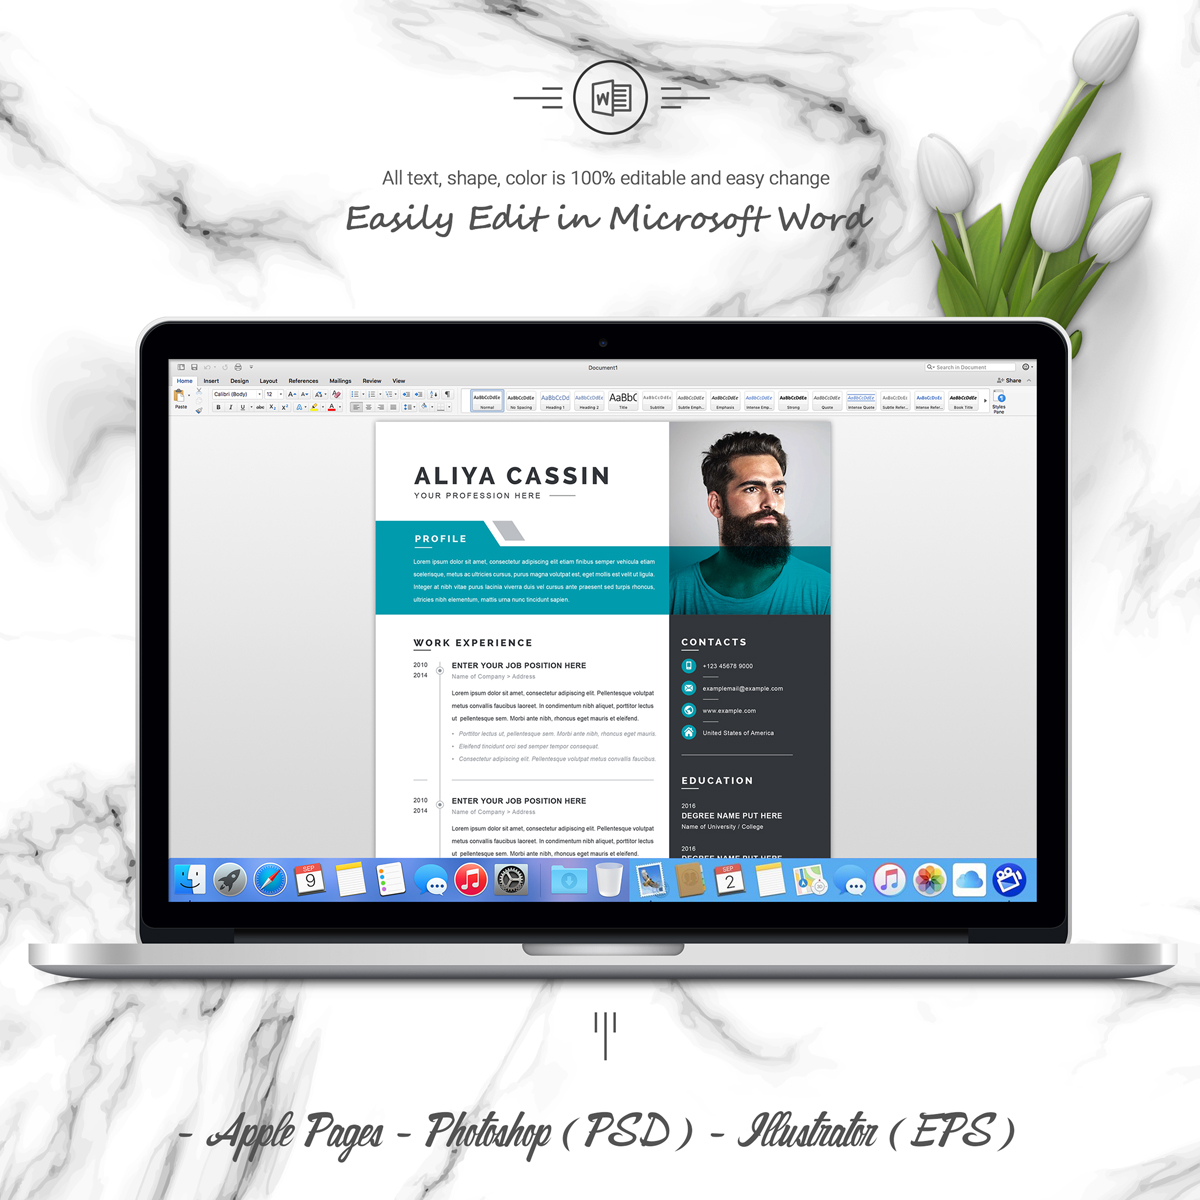 https://s3u.tmimgcdn.com/1860567-1583588749627_05_3-Pages-Free-Resume-MS-Word-File-Format-Design-Template.jpg